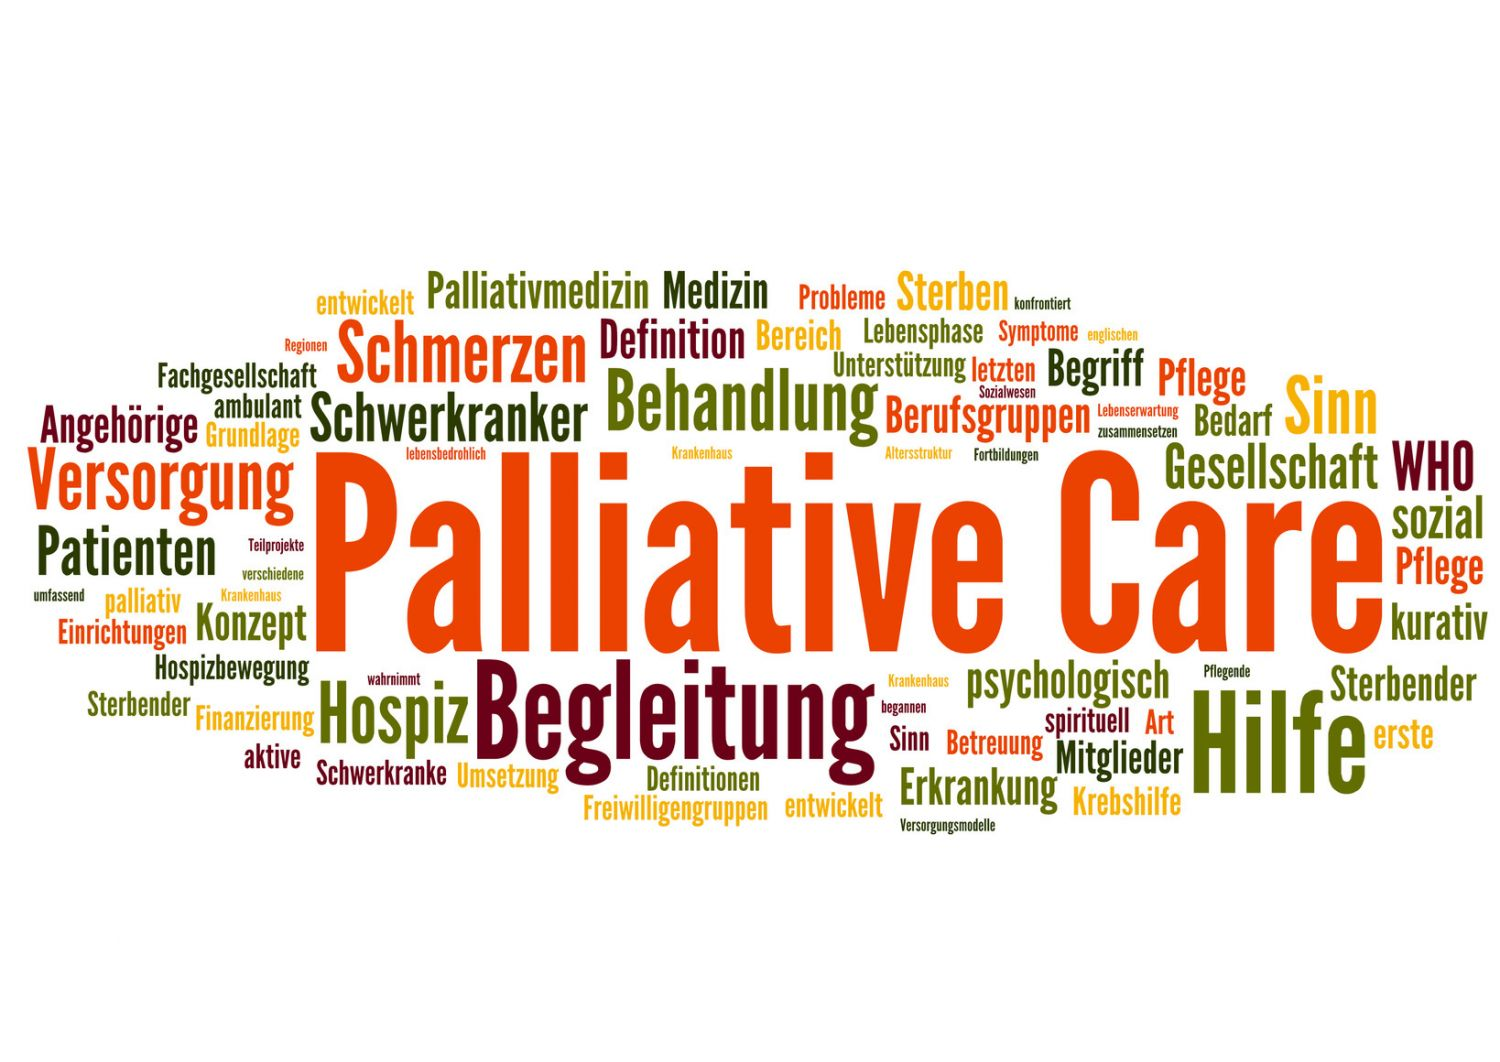 how to become a palliative care physician